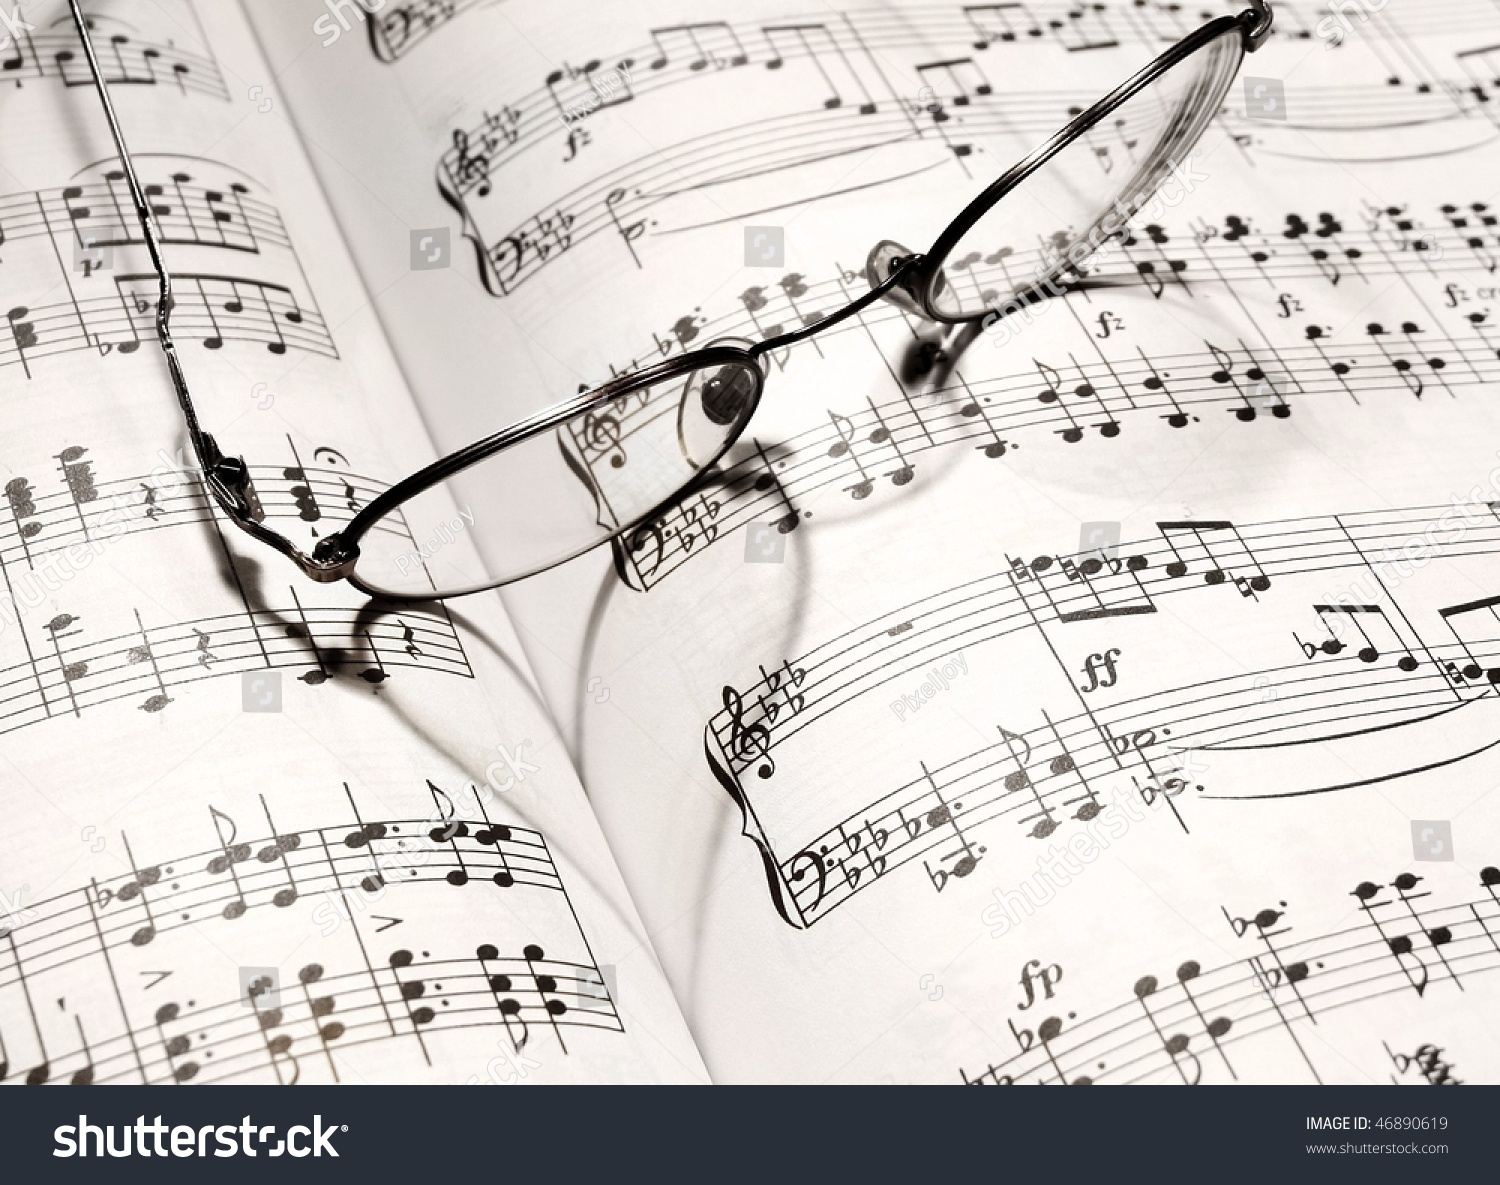 Eyeglass casts heart shadow on music stock photo royalty free eyeglass casts heart shadow on music stock photo royalty free 46890619 shutterstock ccuart Image collections